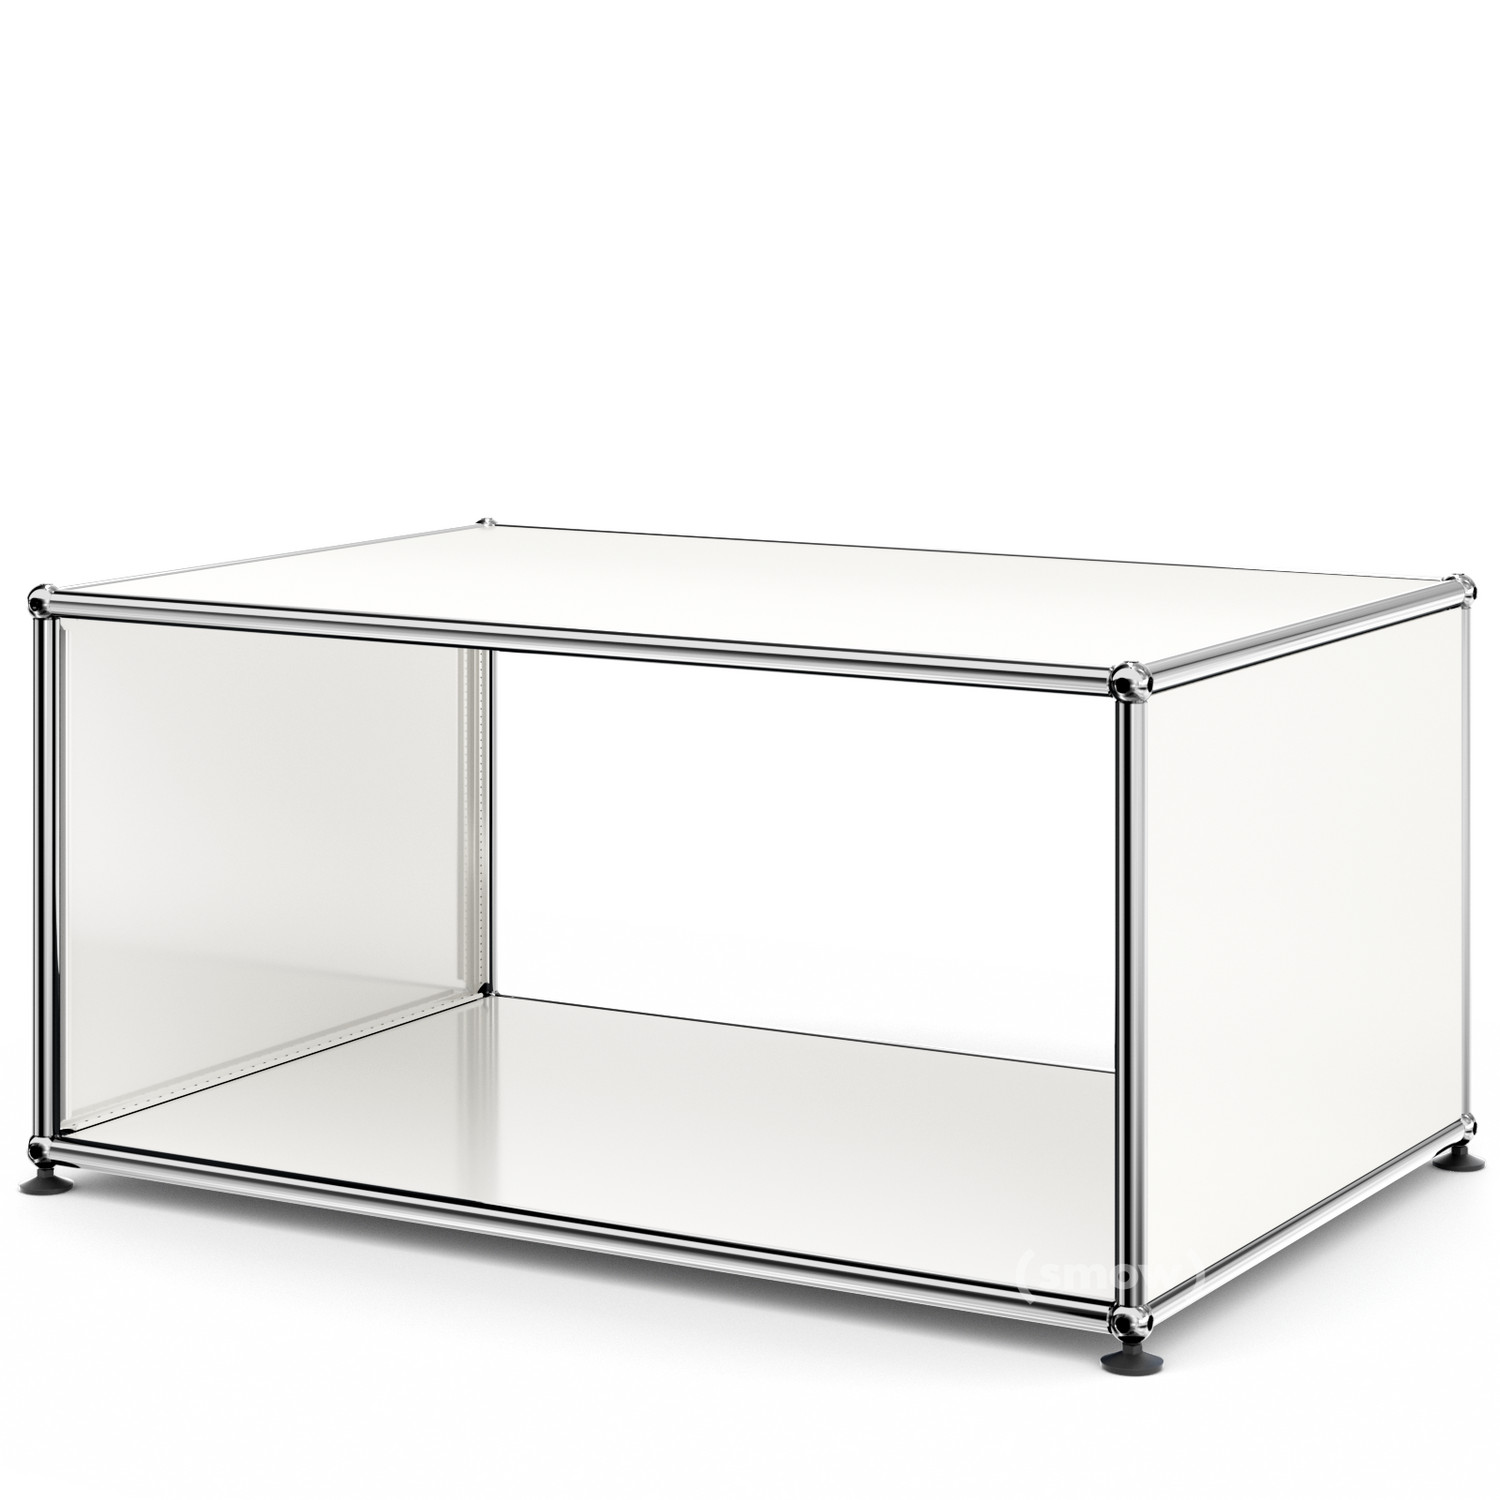 Usm Haller Side Table With Side Panels 75 Cm Without Interior